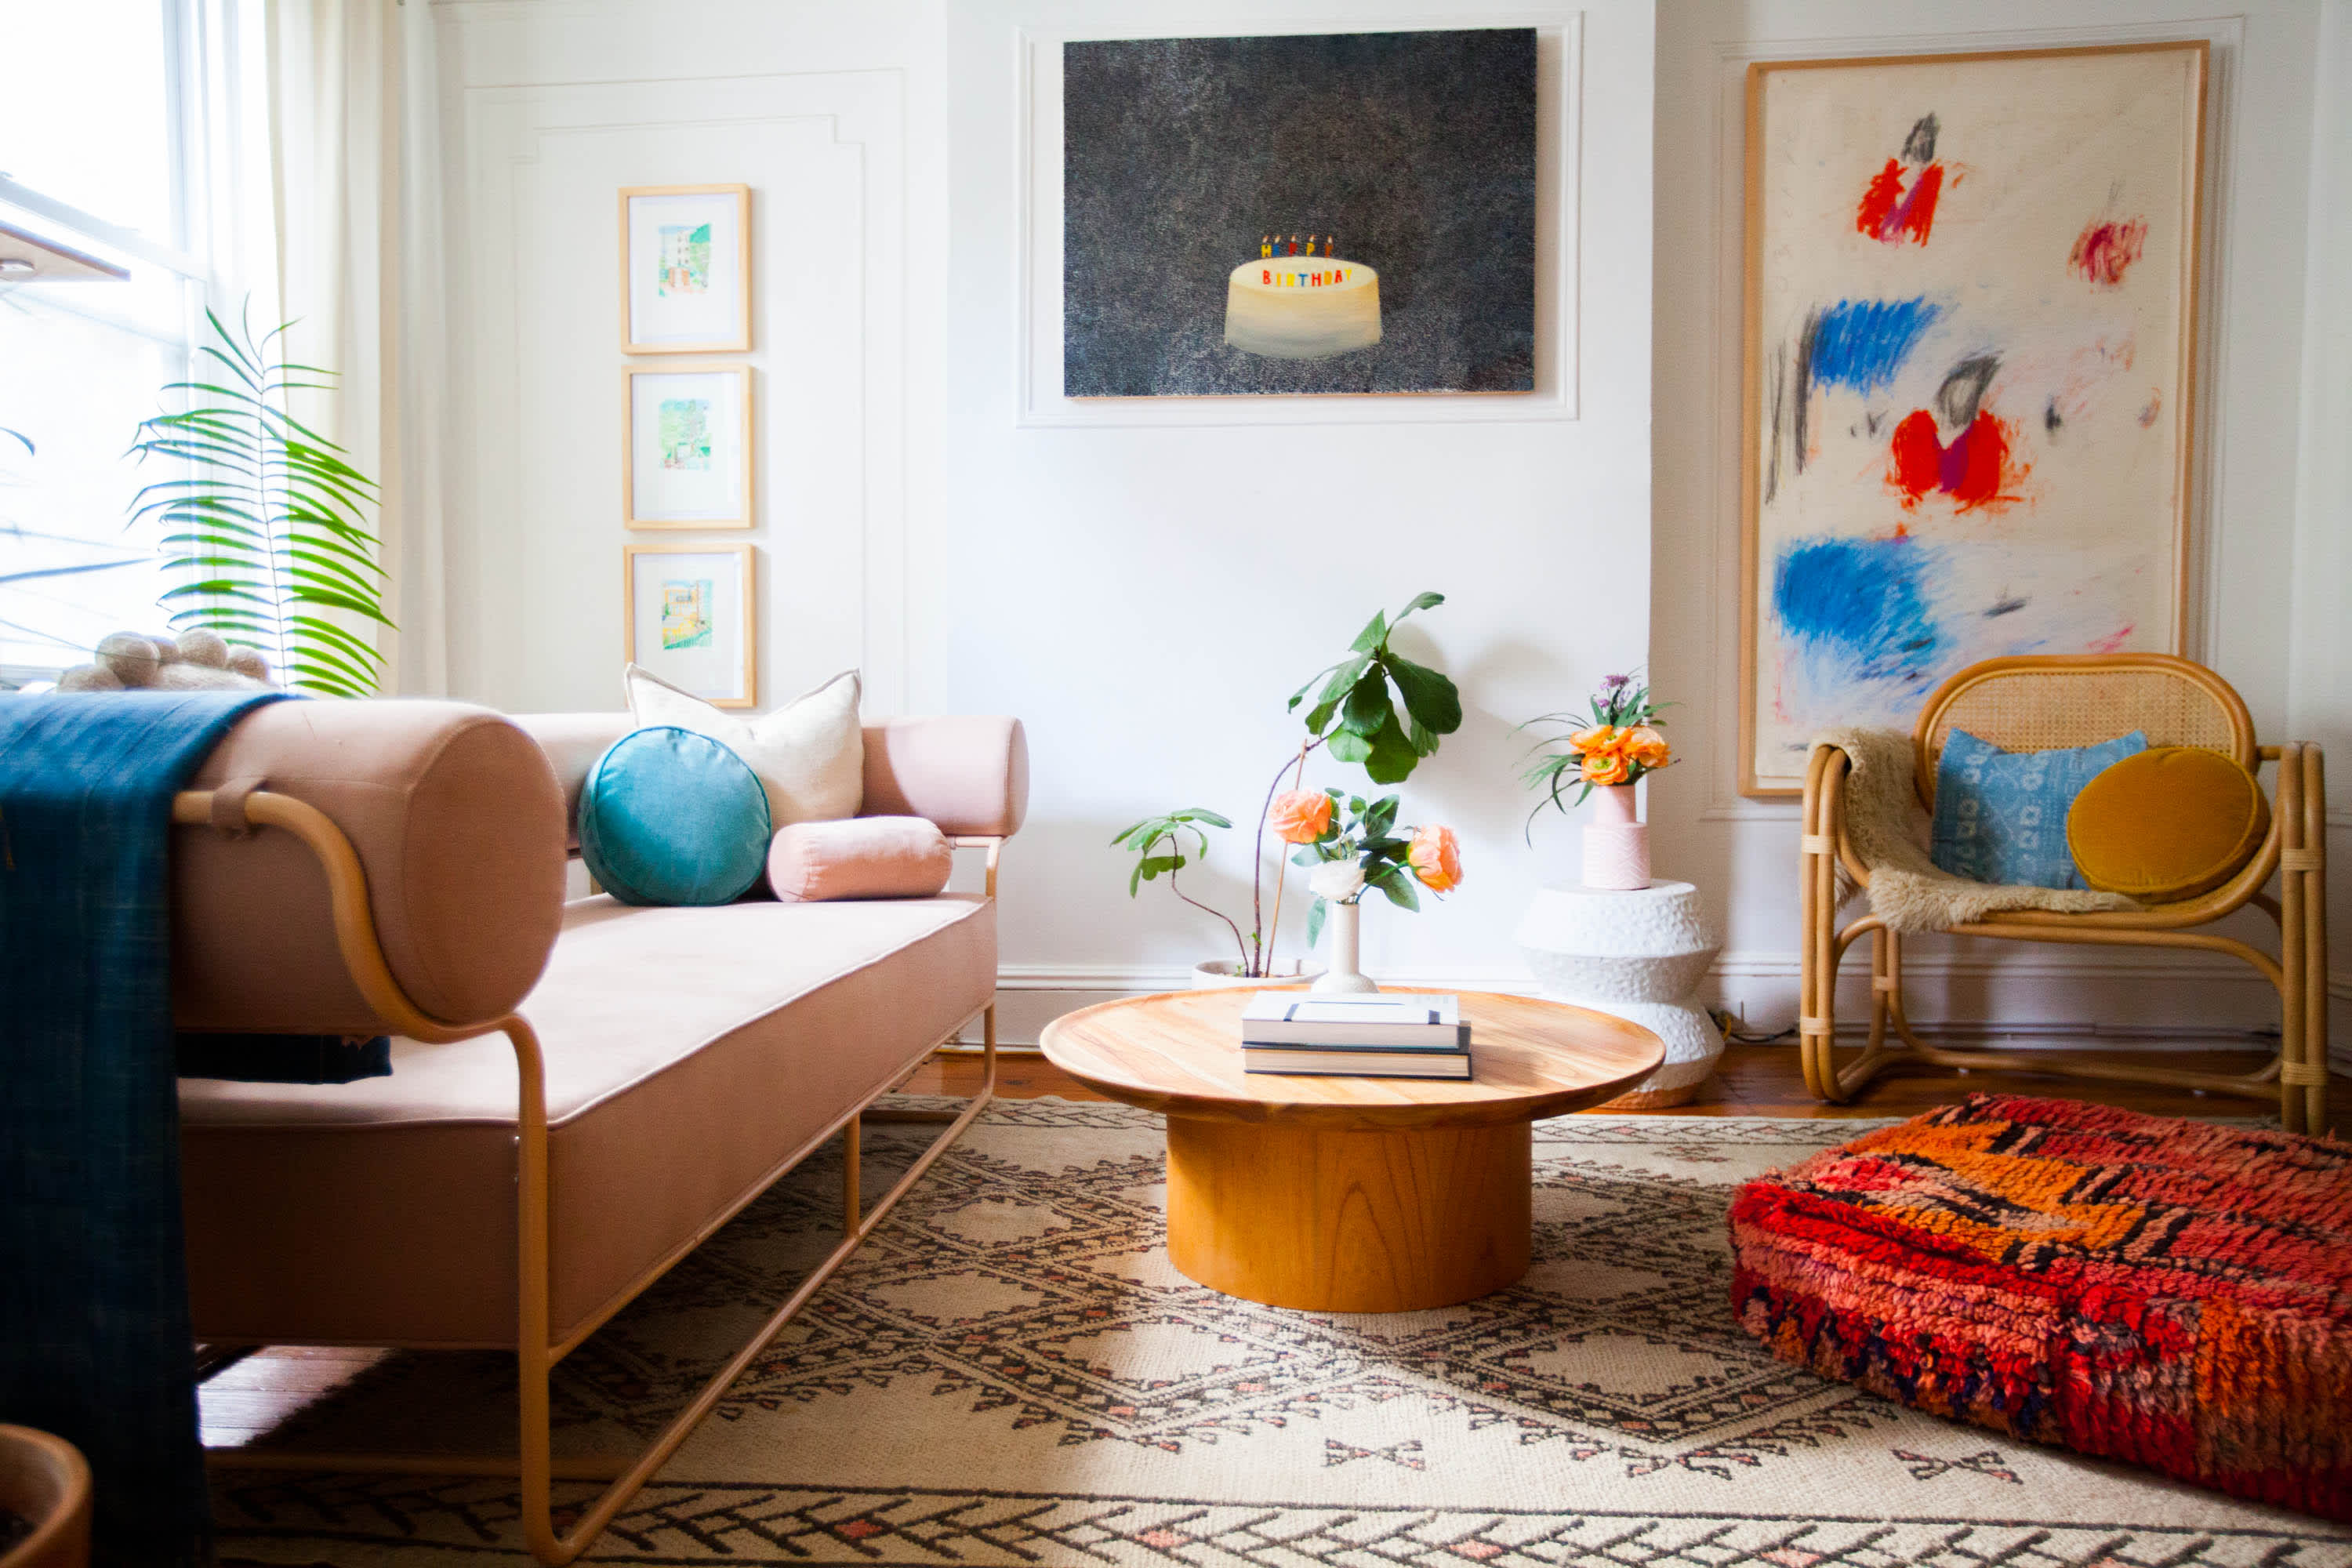 This Brooklyn Home Has An Envy Inducing Art Collection: Gallery Image 2